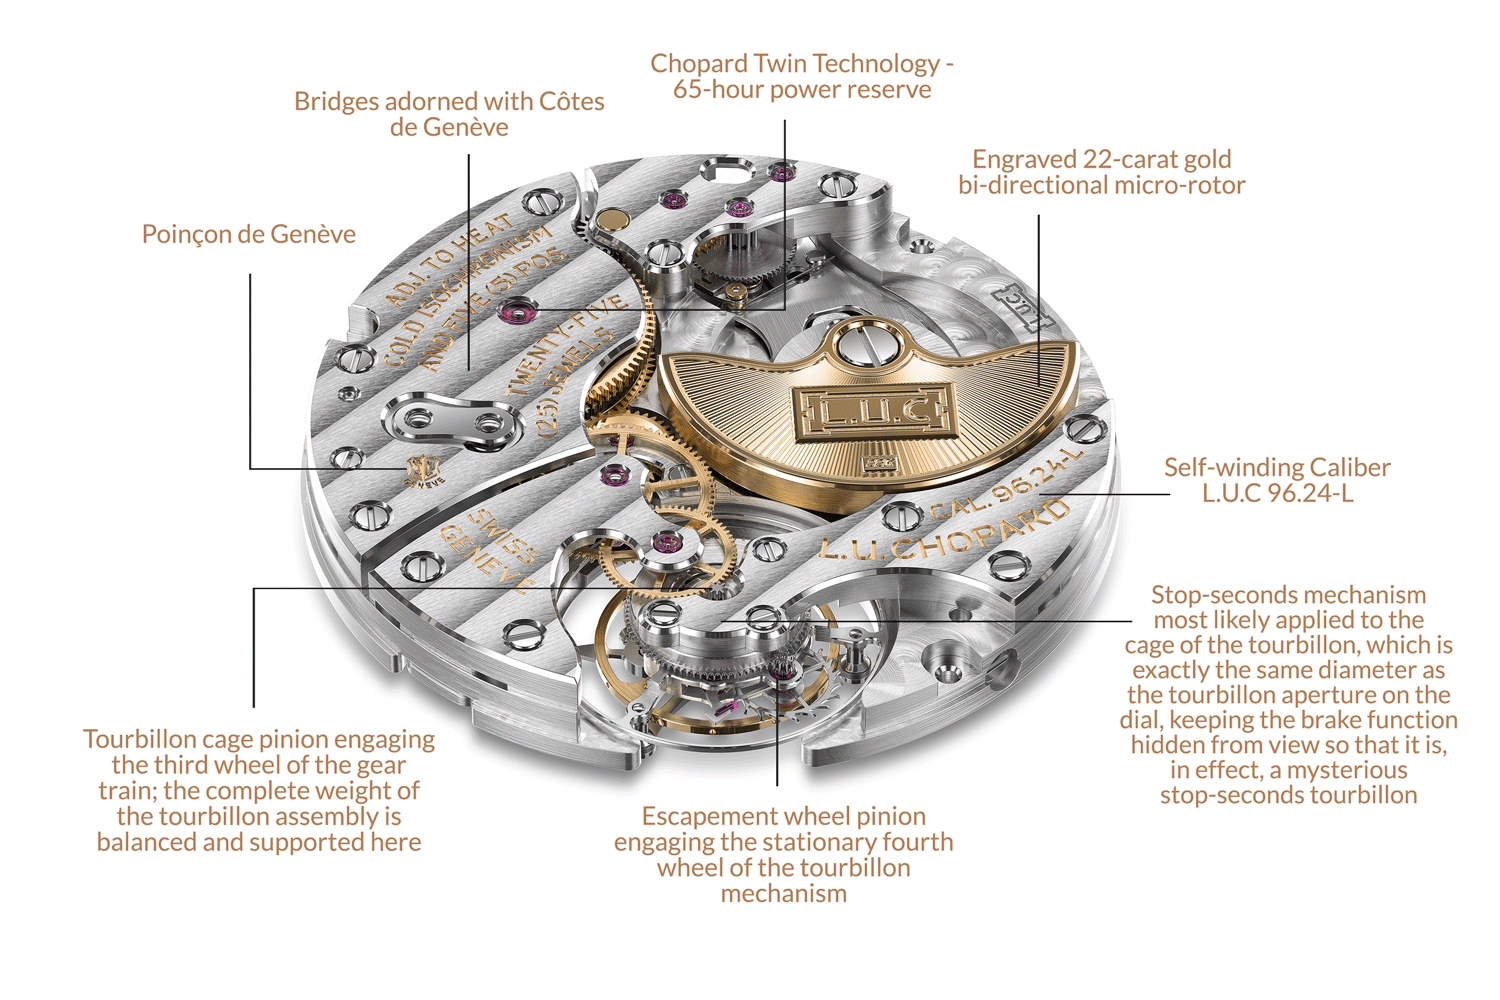 The L.U.C 96.24-L mechanical movement with automatic winding